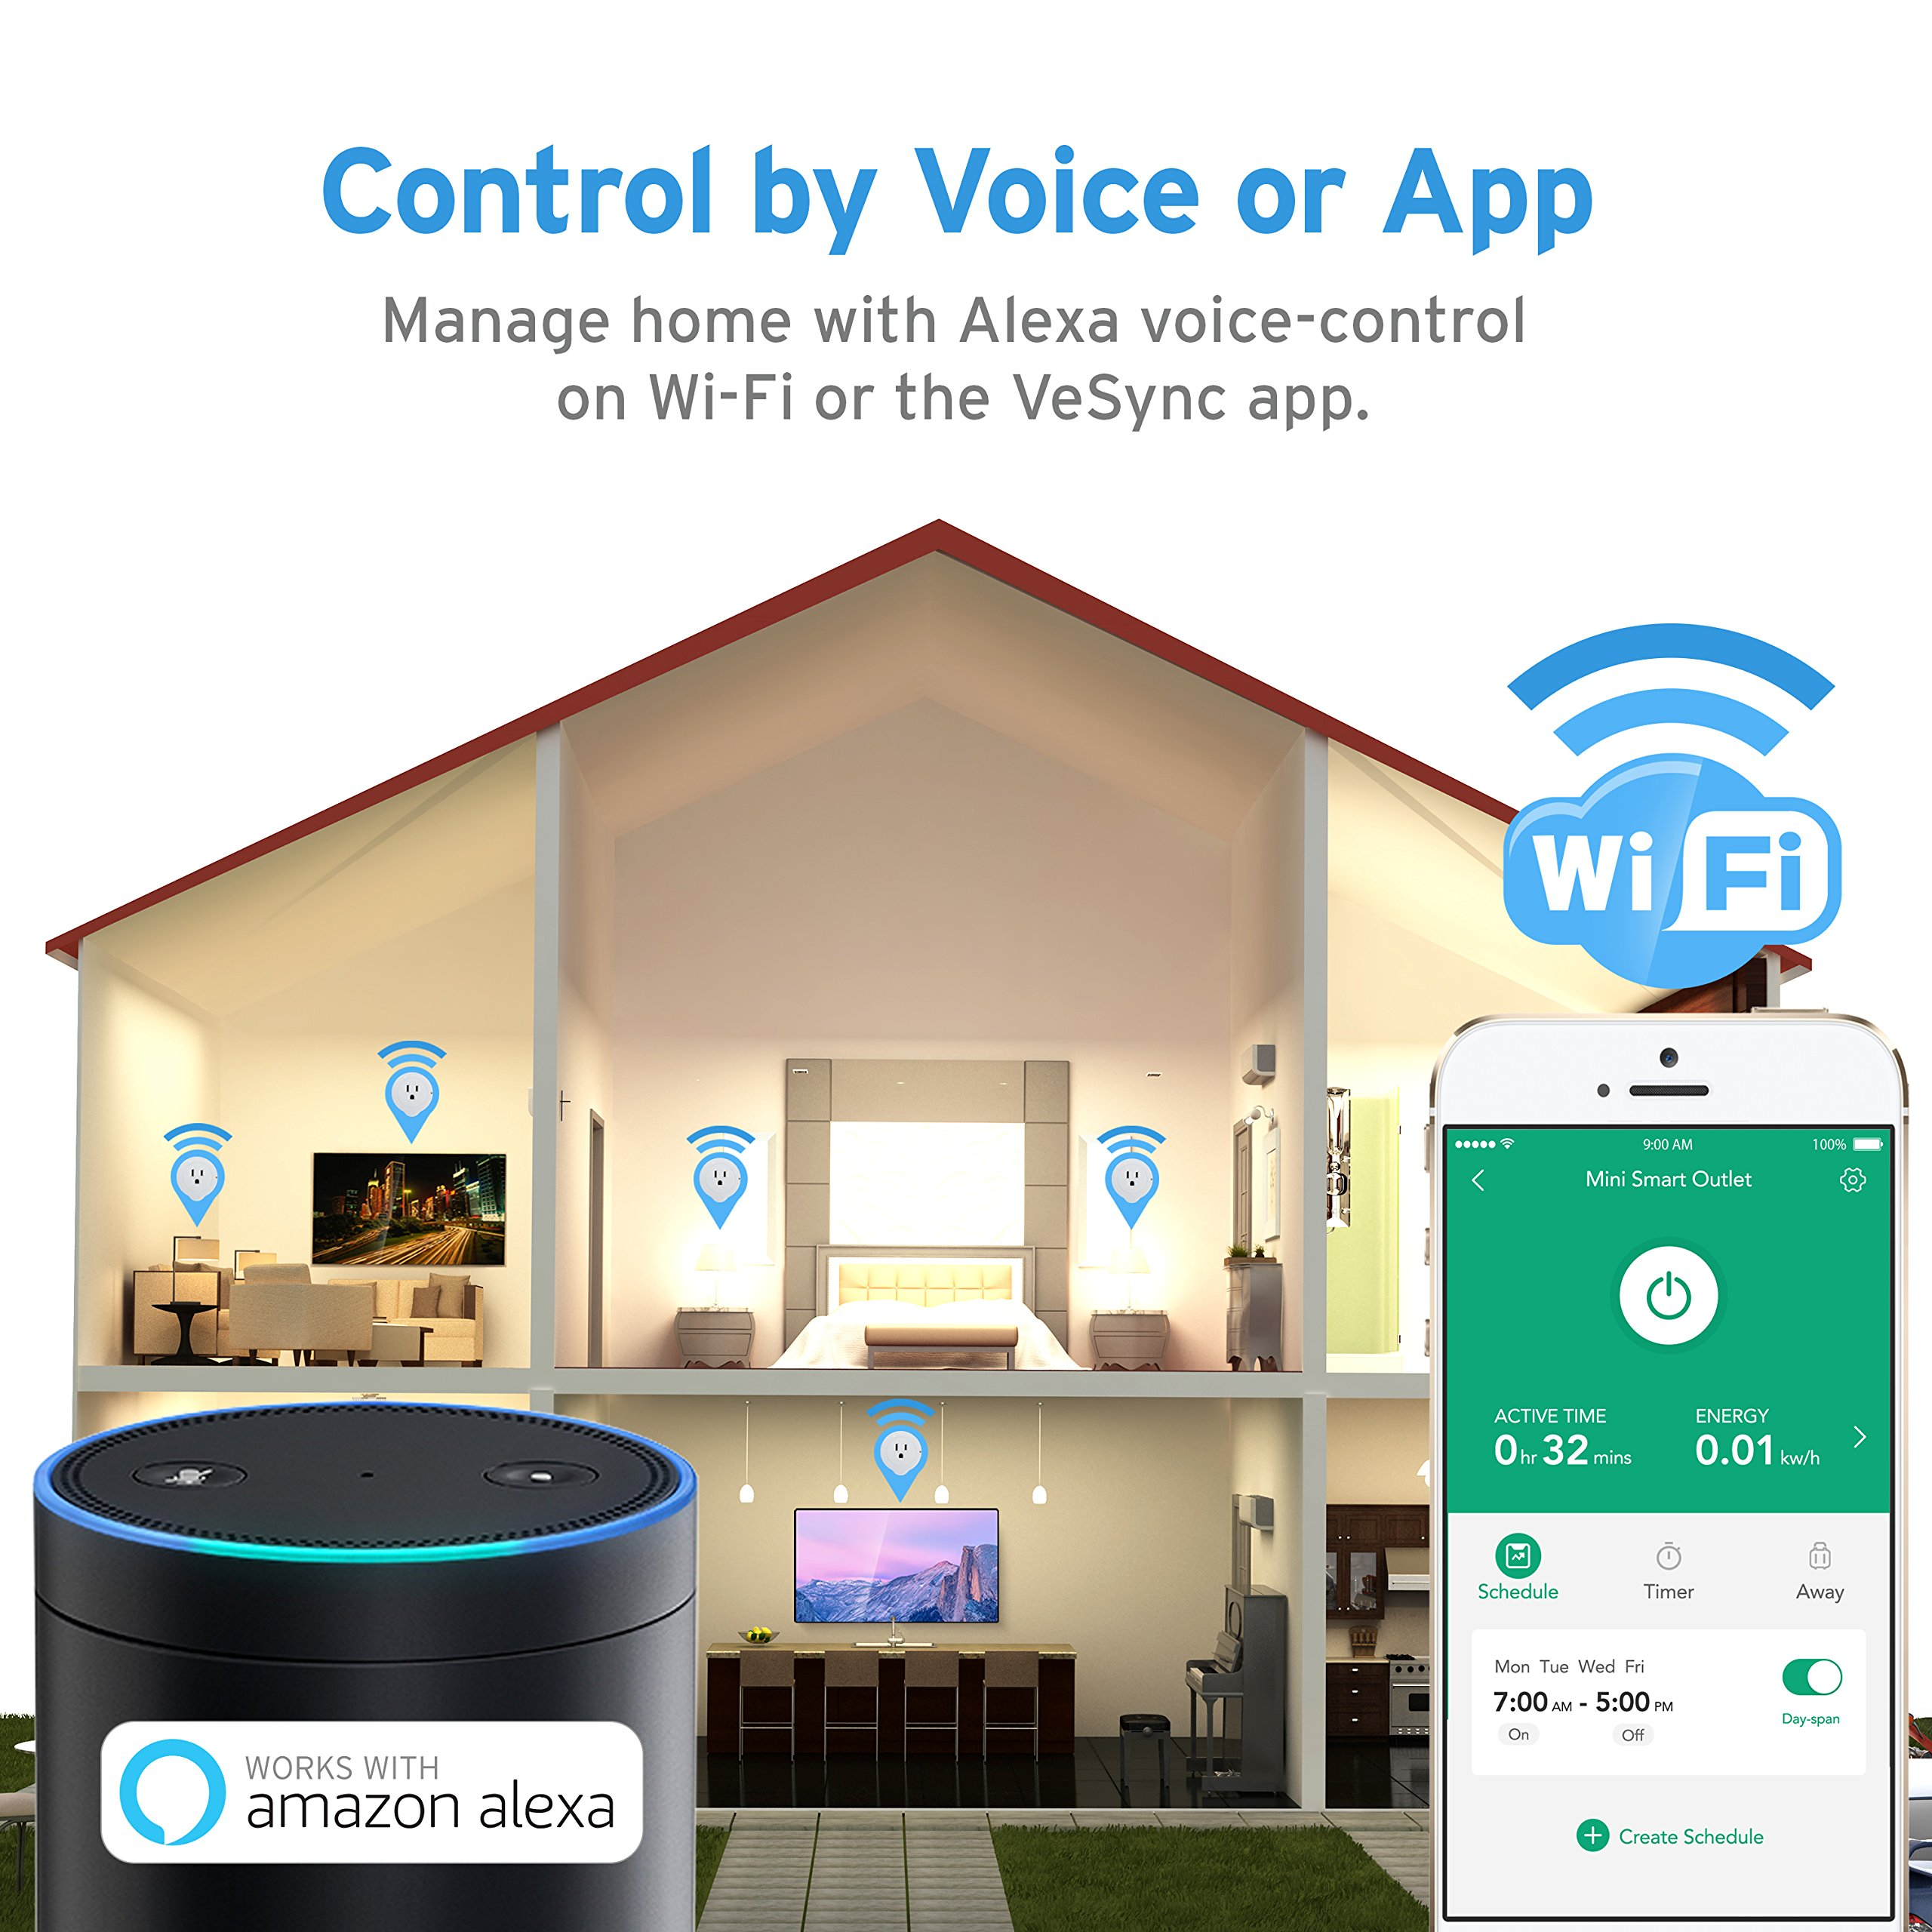 Etekcity WiFi Smart Plug, Voltson Mini Outlet with Energy Monitoring (6-Pack), No Hub Required, ETL Listed, White, Works with Alexa, Google Home and IFTTT by Etekcity (Image #3)